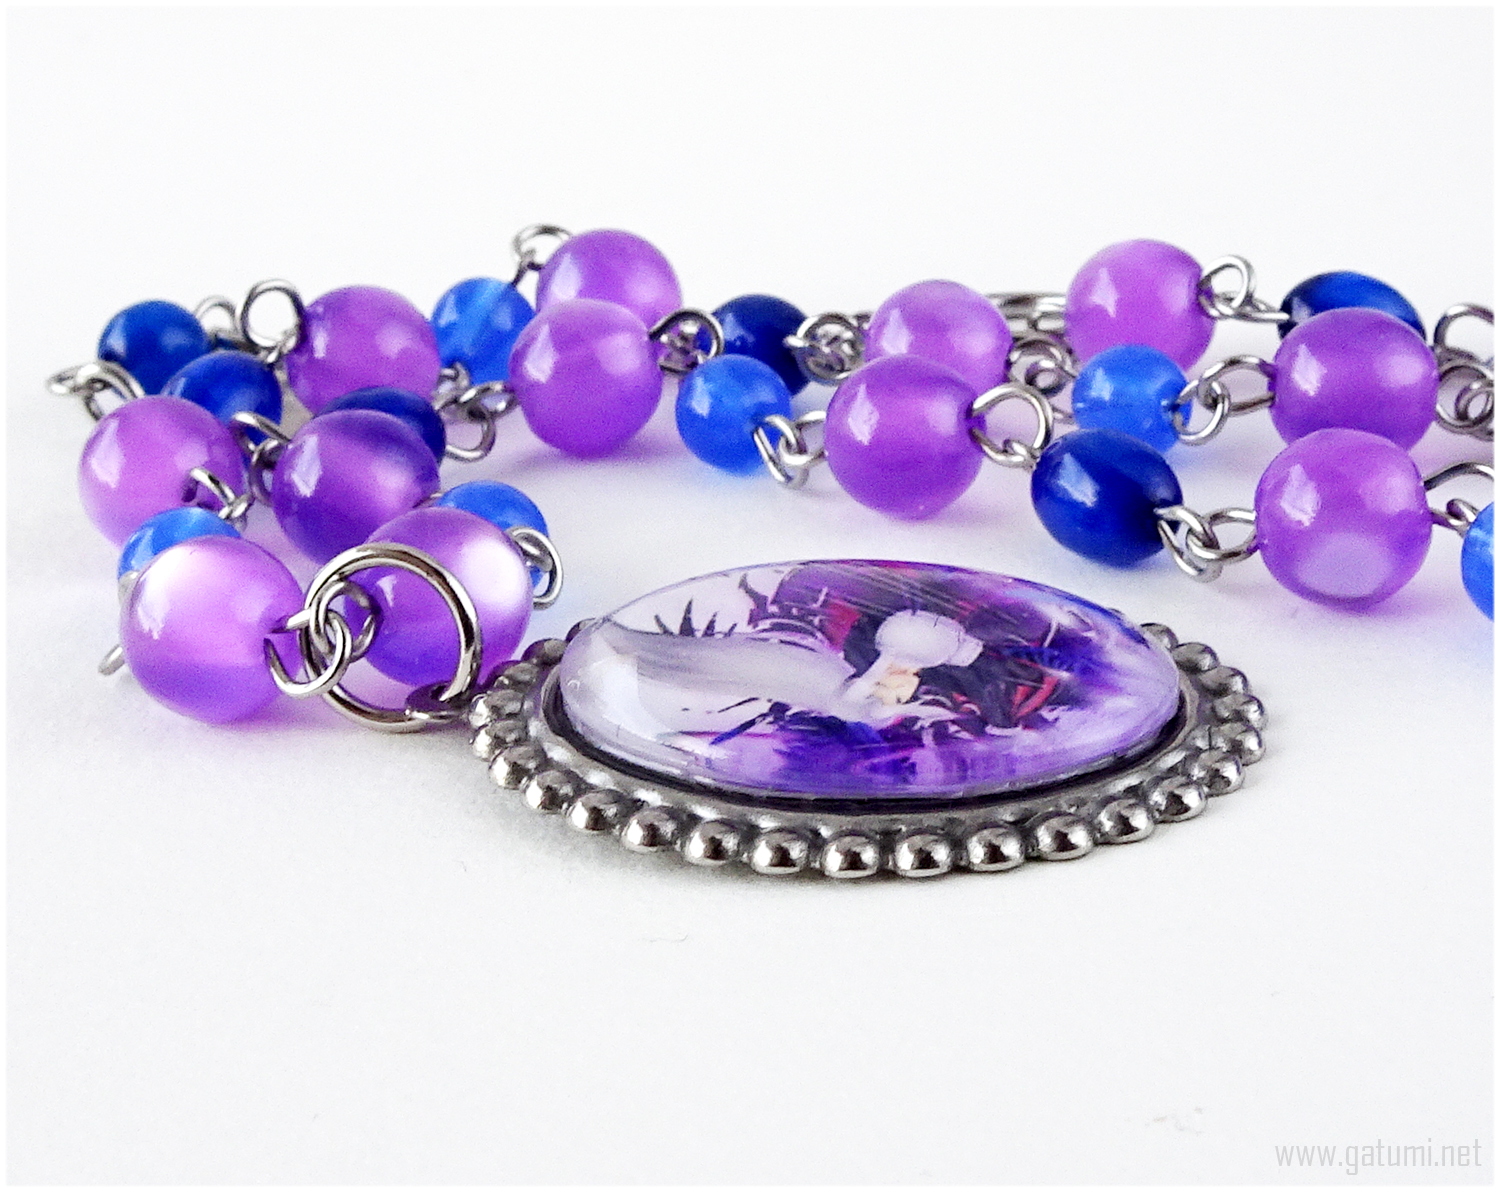 Sephiroth Cameo Necklace, Purple, Blue, Silver, Stainless Steel, Handmade